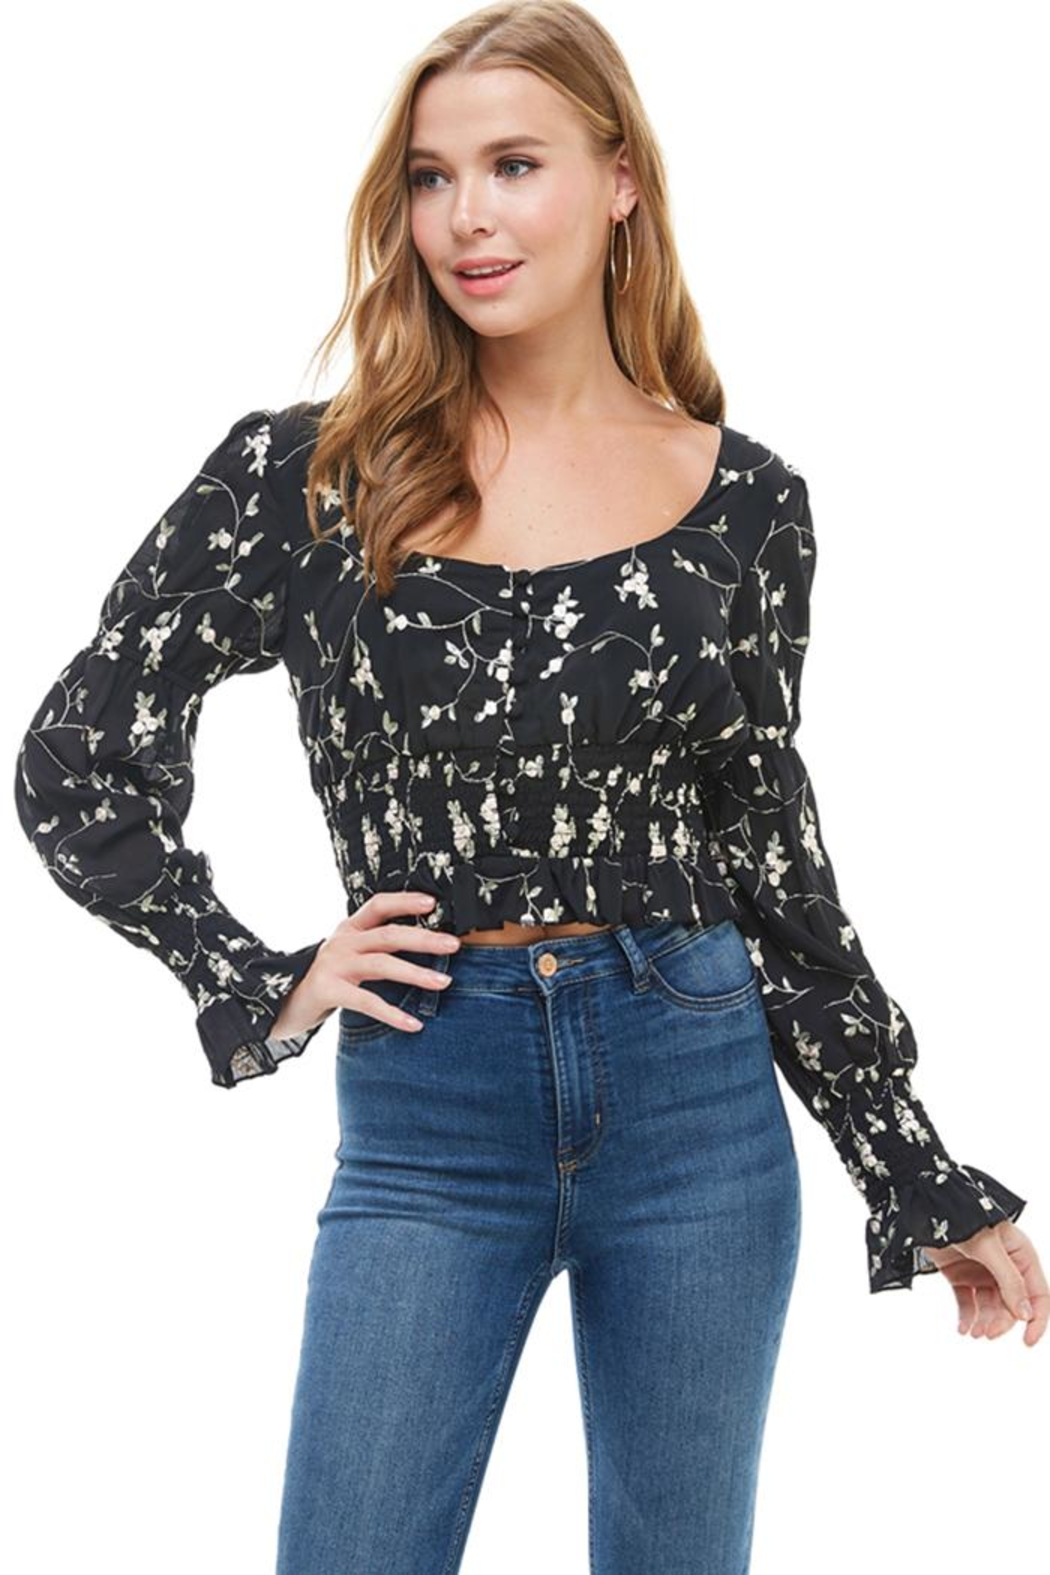 ACOA Embroidered Smocked Top - Main Image